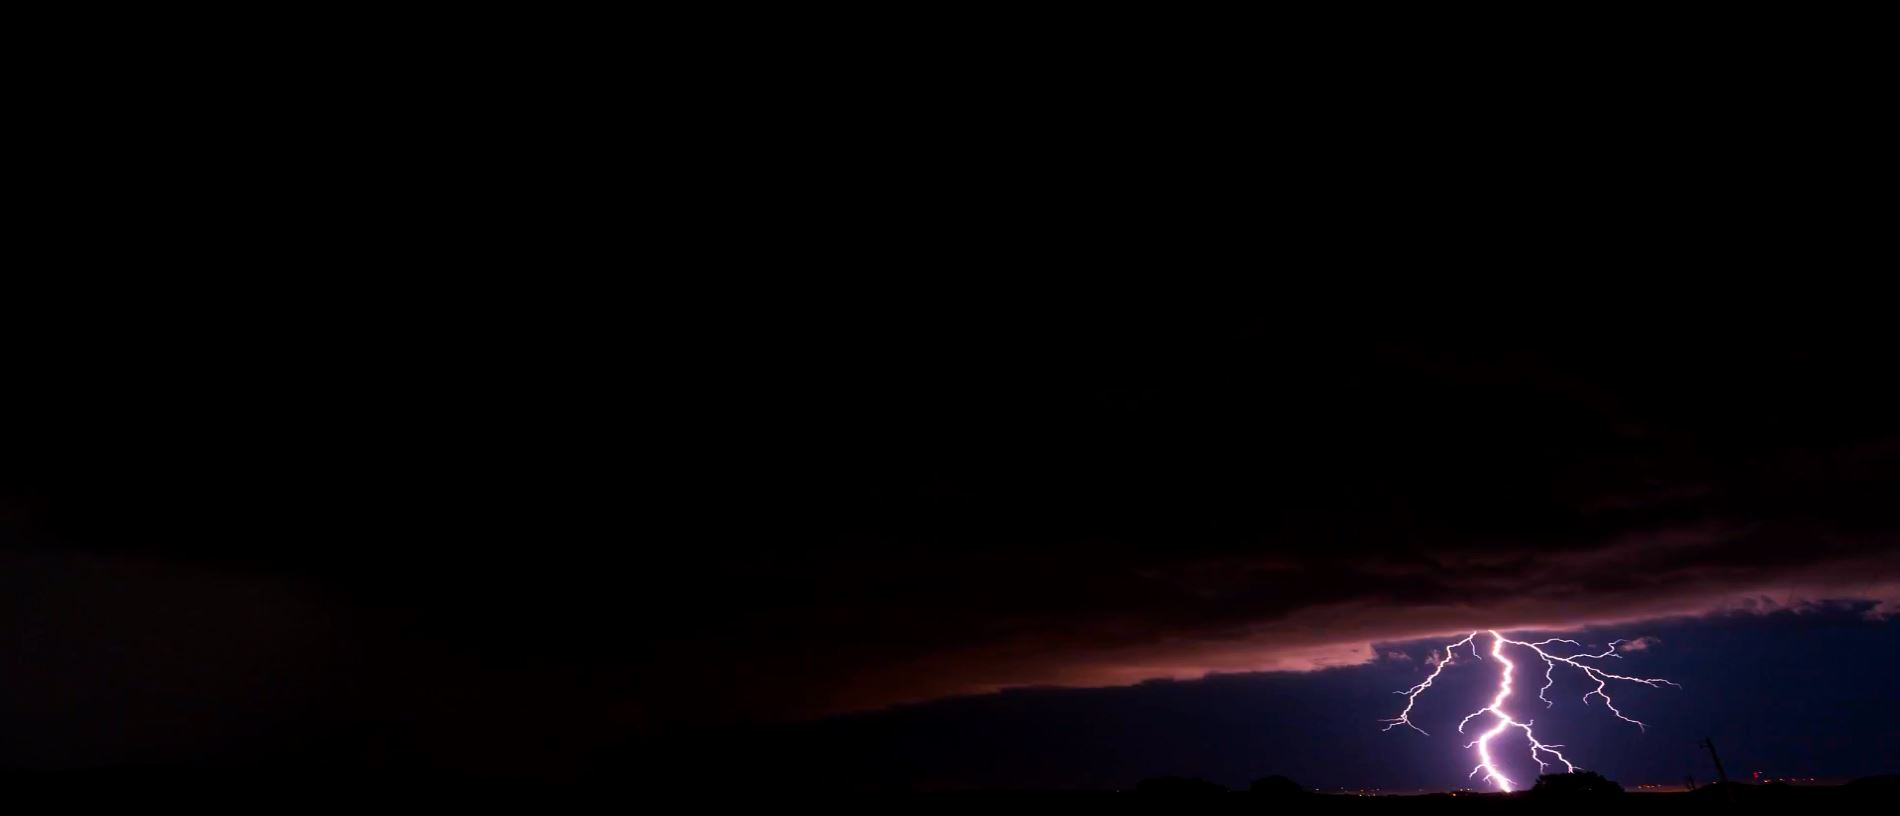 Wyoming Wildscapes a storm is coming 6 - Be There Before